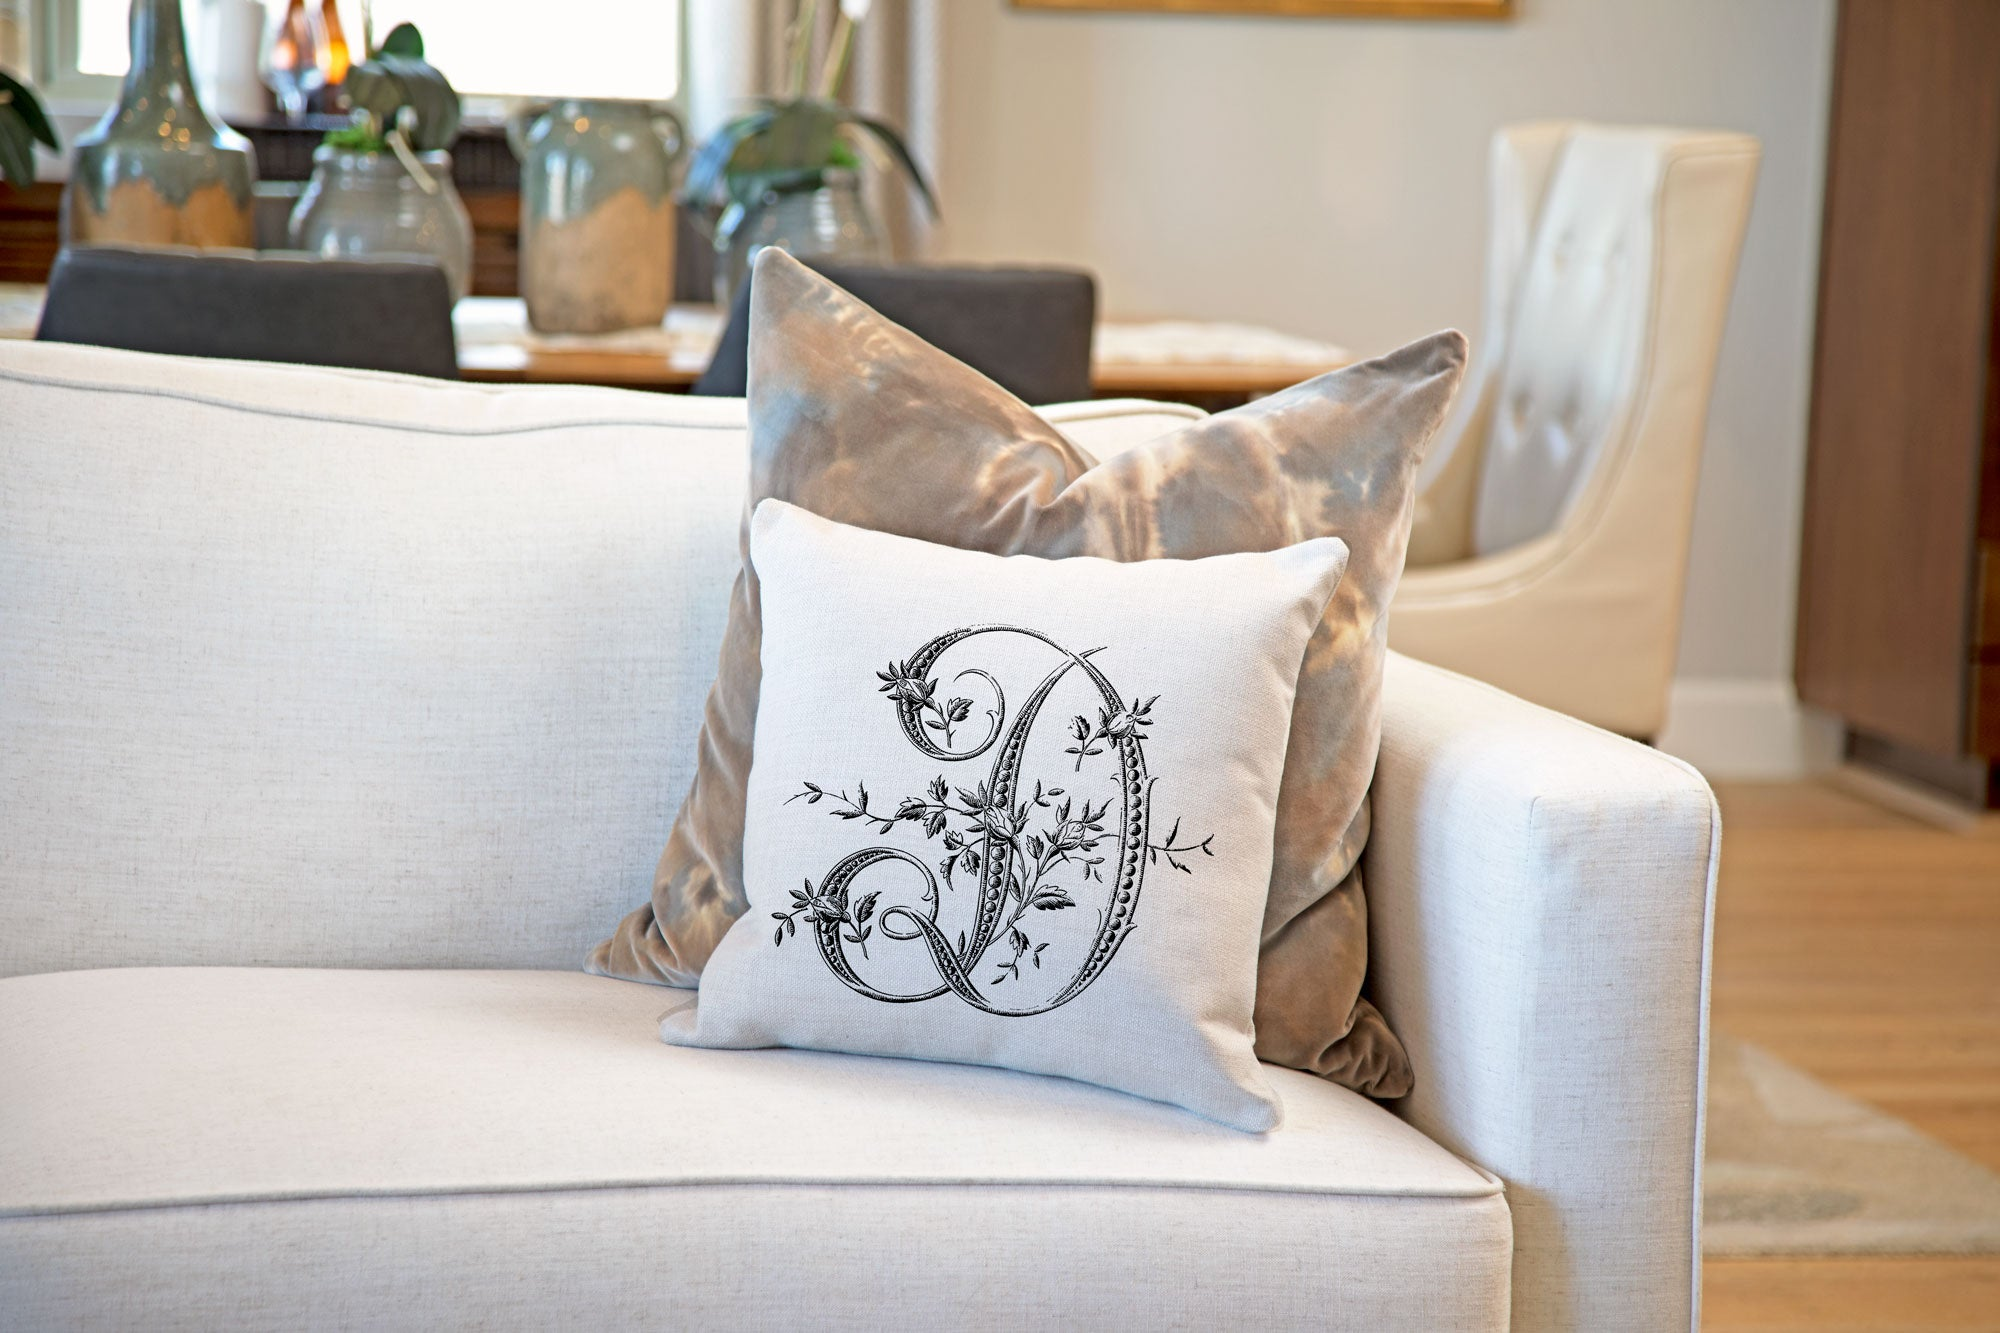 Vintage French Monogram Letter D Throw Pillow Cover